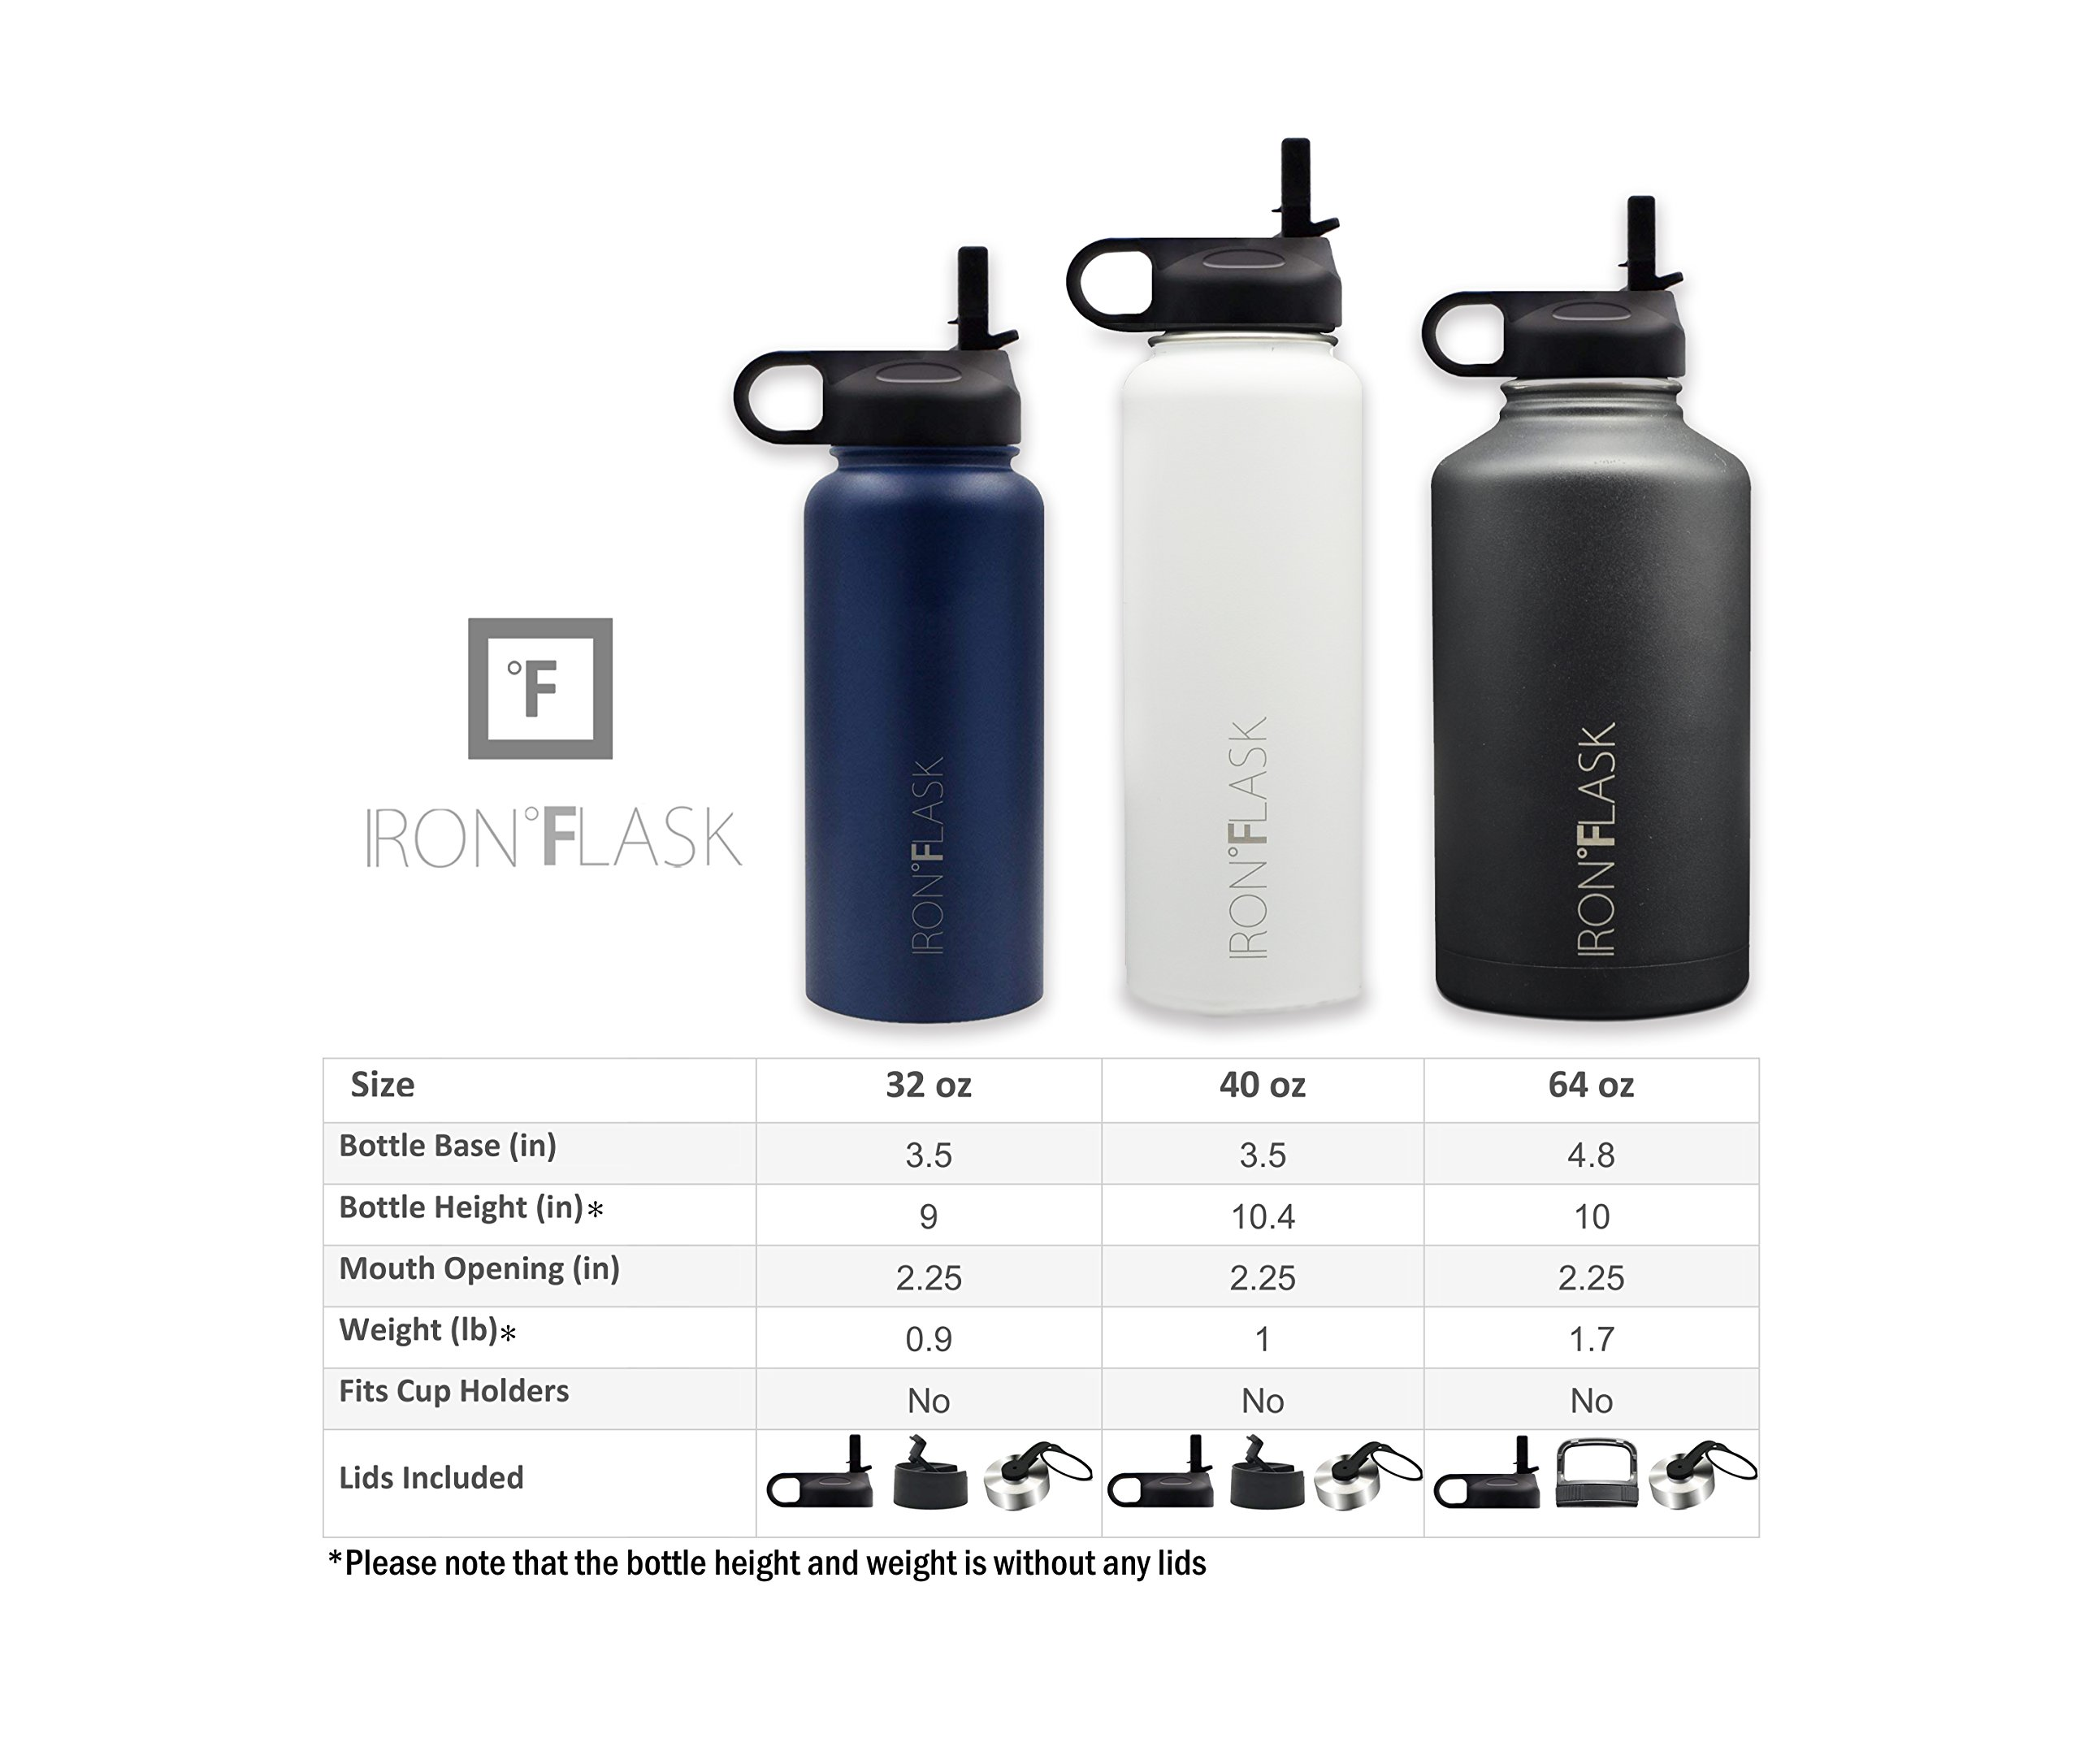 Iron Flask - 40 oz, 3 Lids, Vacuum Insulated Stainless Steel Water Bottle, Hot & Cold, Wide Mouth, Nalgene, Double Walled, Simple Flow Thermo Modern Travel Mug, Hydro Canteen Powder Coated, Black by Iron Flask (Image #2)